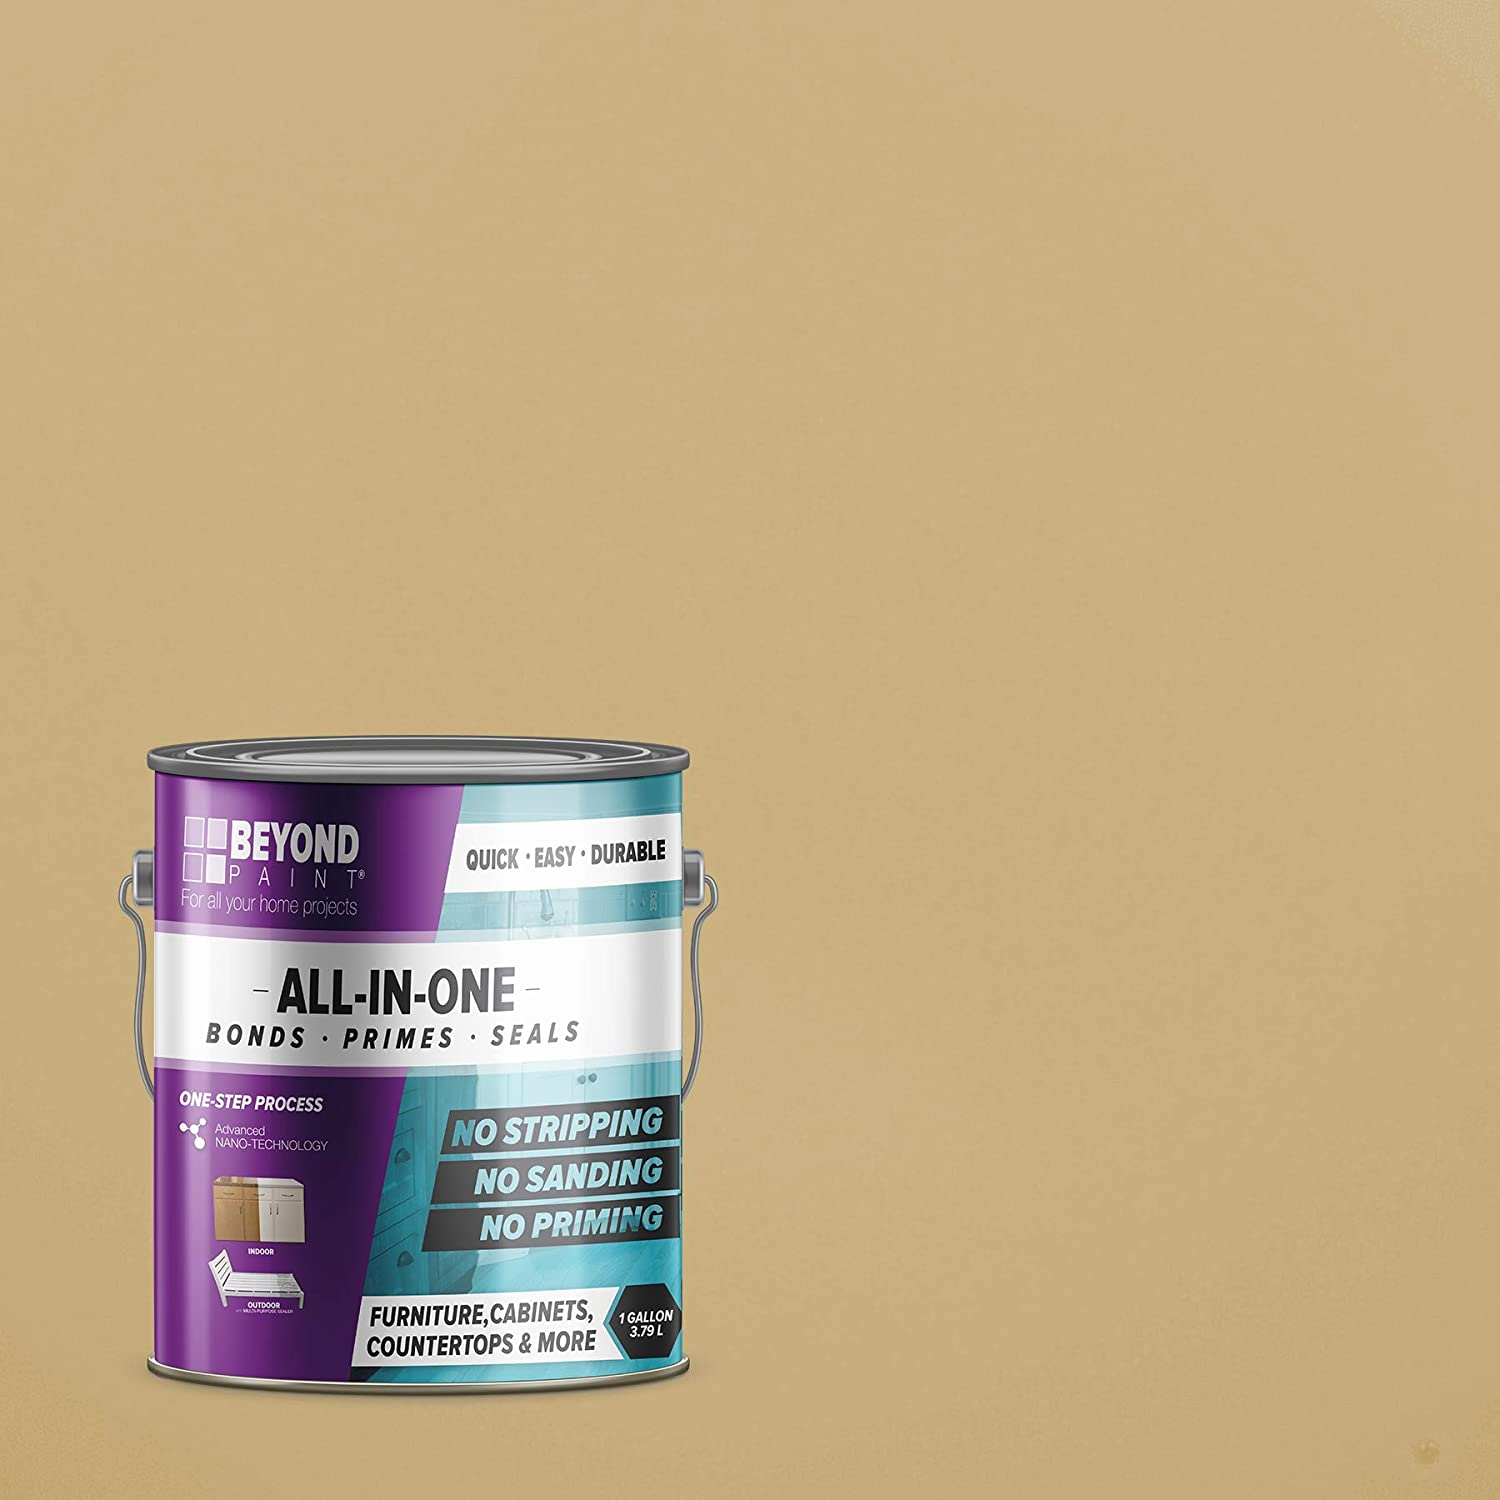 Beyond Paint Furniture Cabinets Sales Max 45% OFF Refinishing More and All-in-One